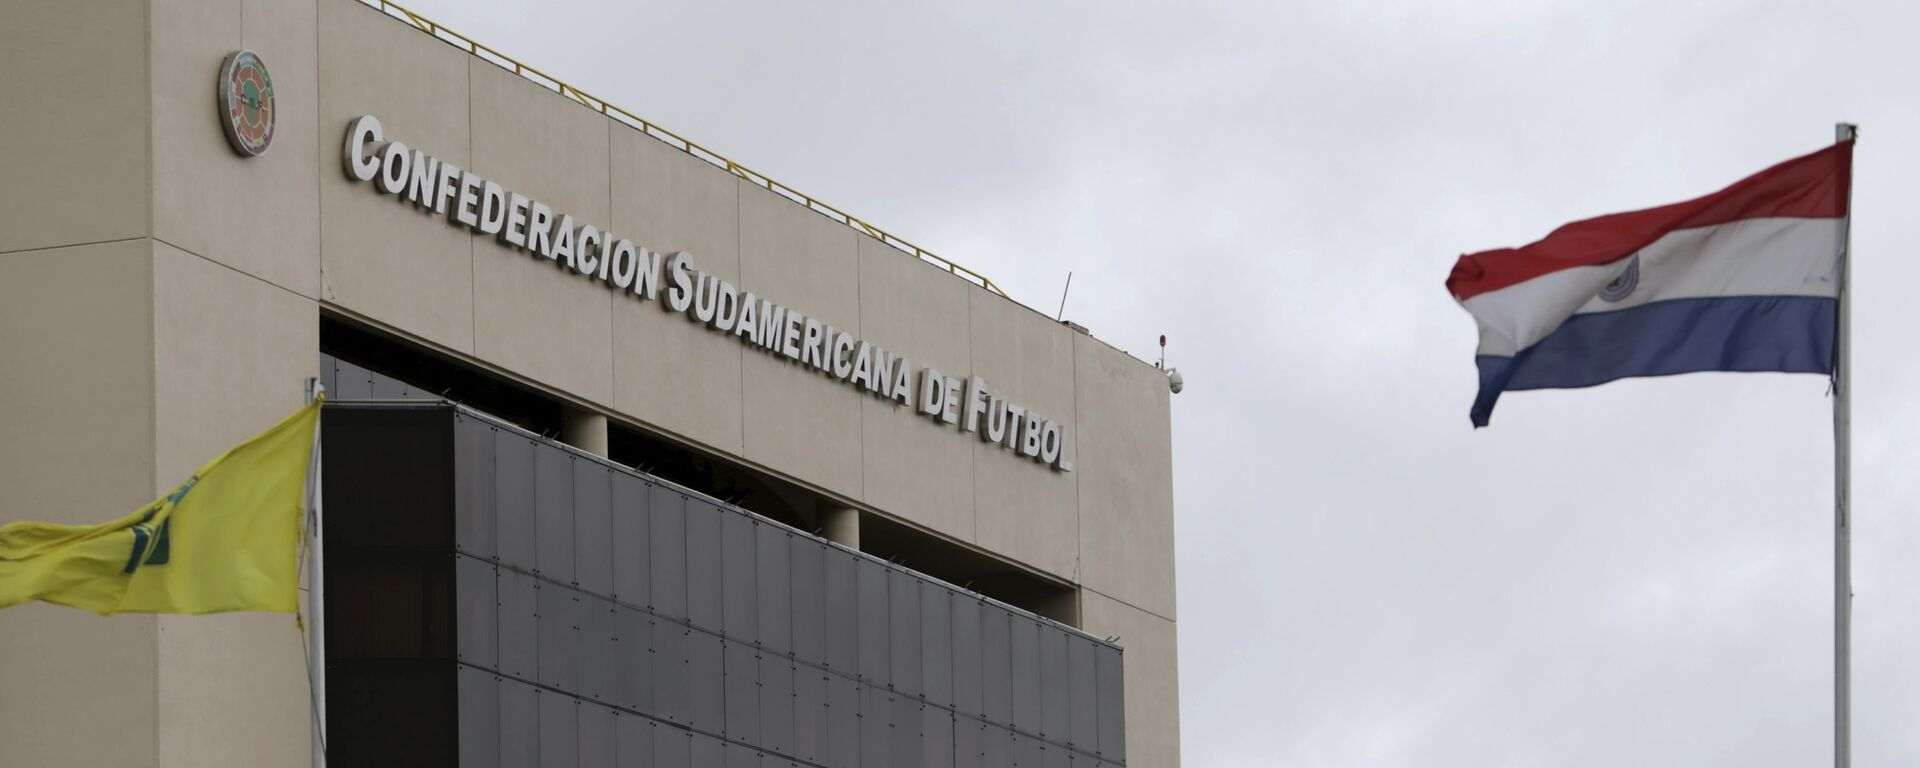 The headquarters of South America's soccer confederation, CONMEBOL, is seen in Luque on the outskirts of Asuncion - Sputnik Mundo, 1920, 06.05.2021